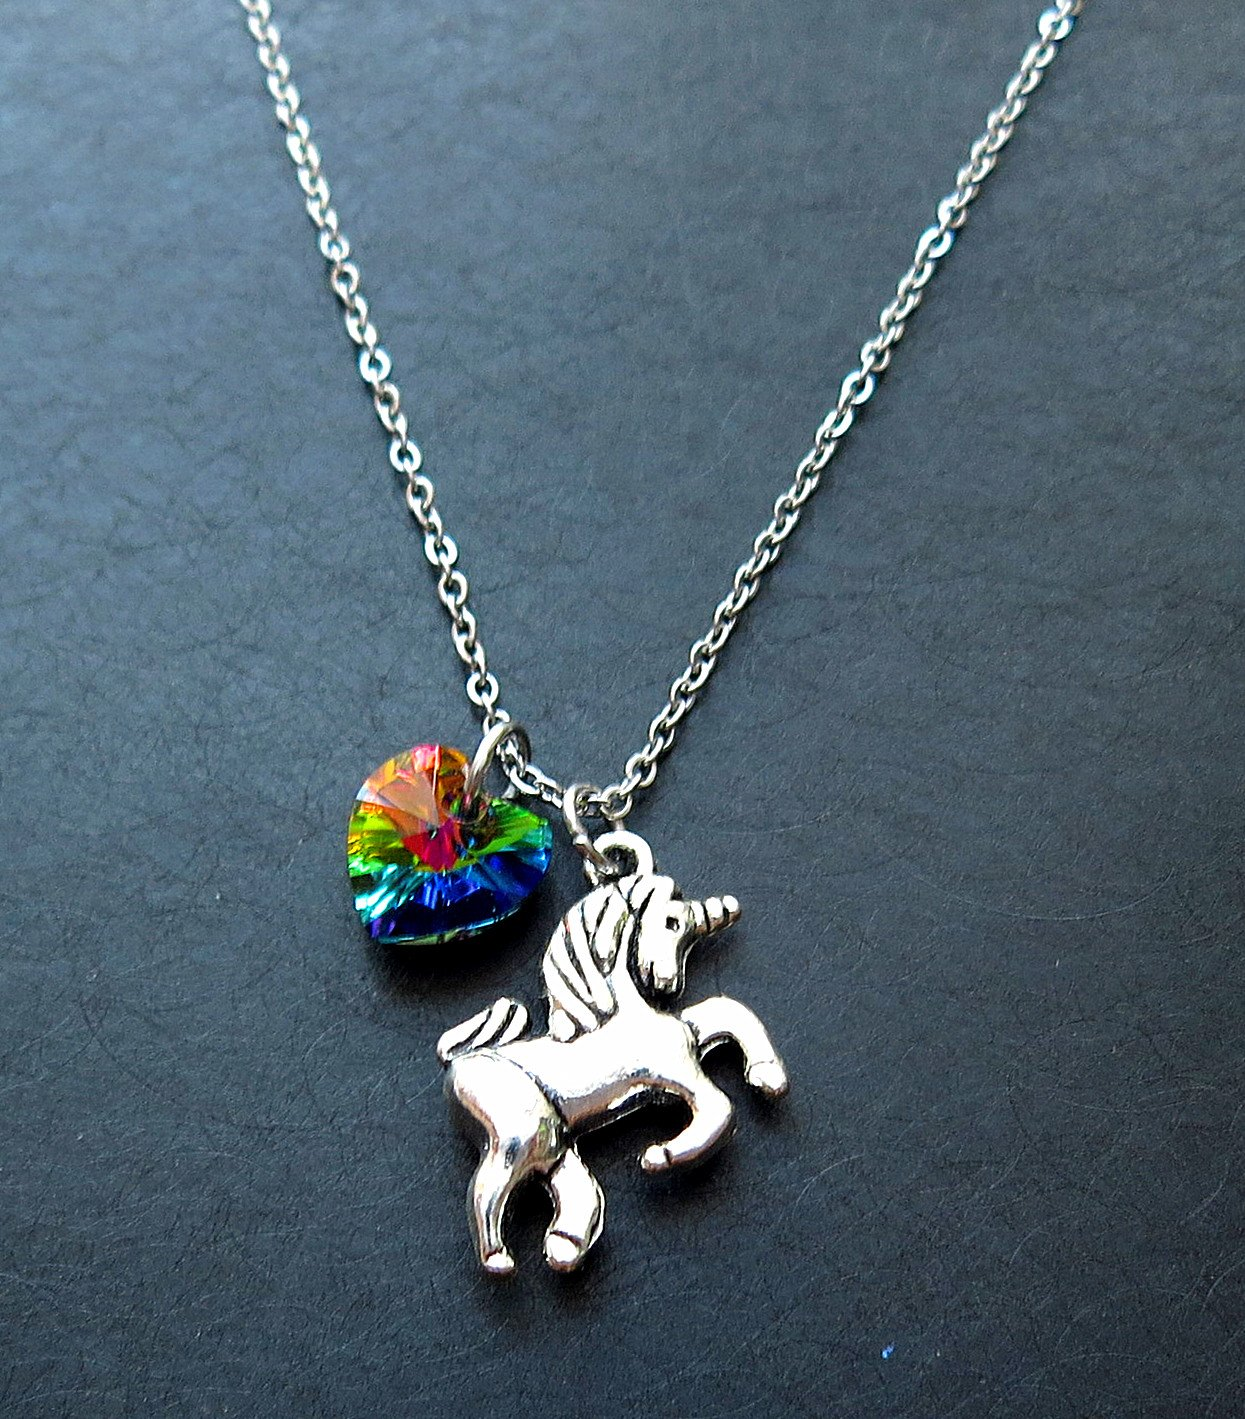 Girl Gift Unicorn Necklace with Rainbow Color Heart Crystal,Rainbow Unicorn Necklace,Fairy Tale Necklace, Fantasy Necklace, Animal Necklace 4